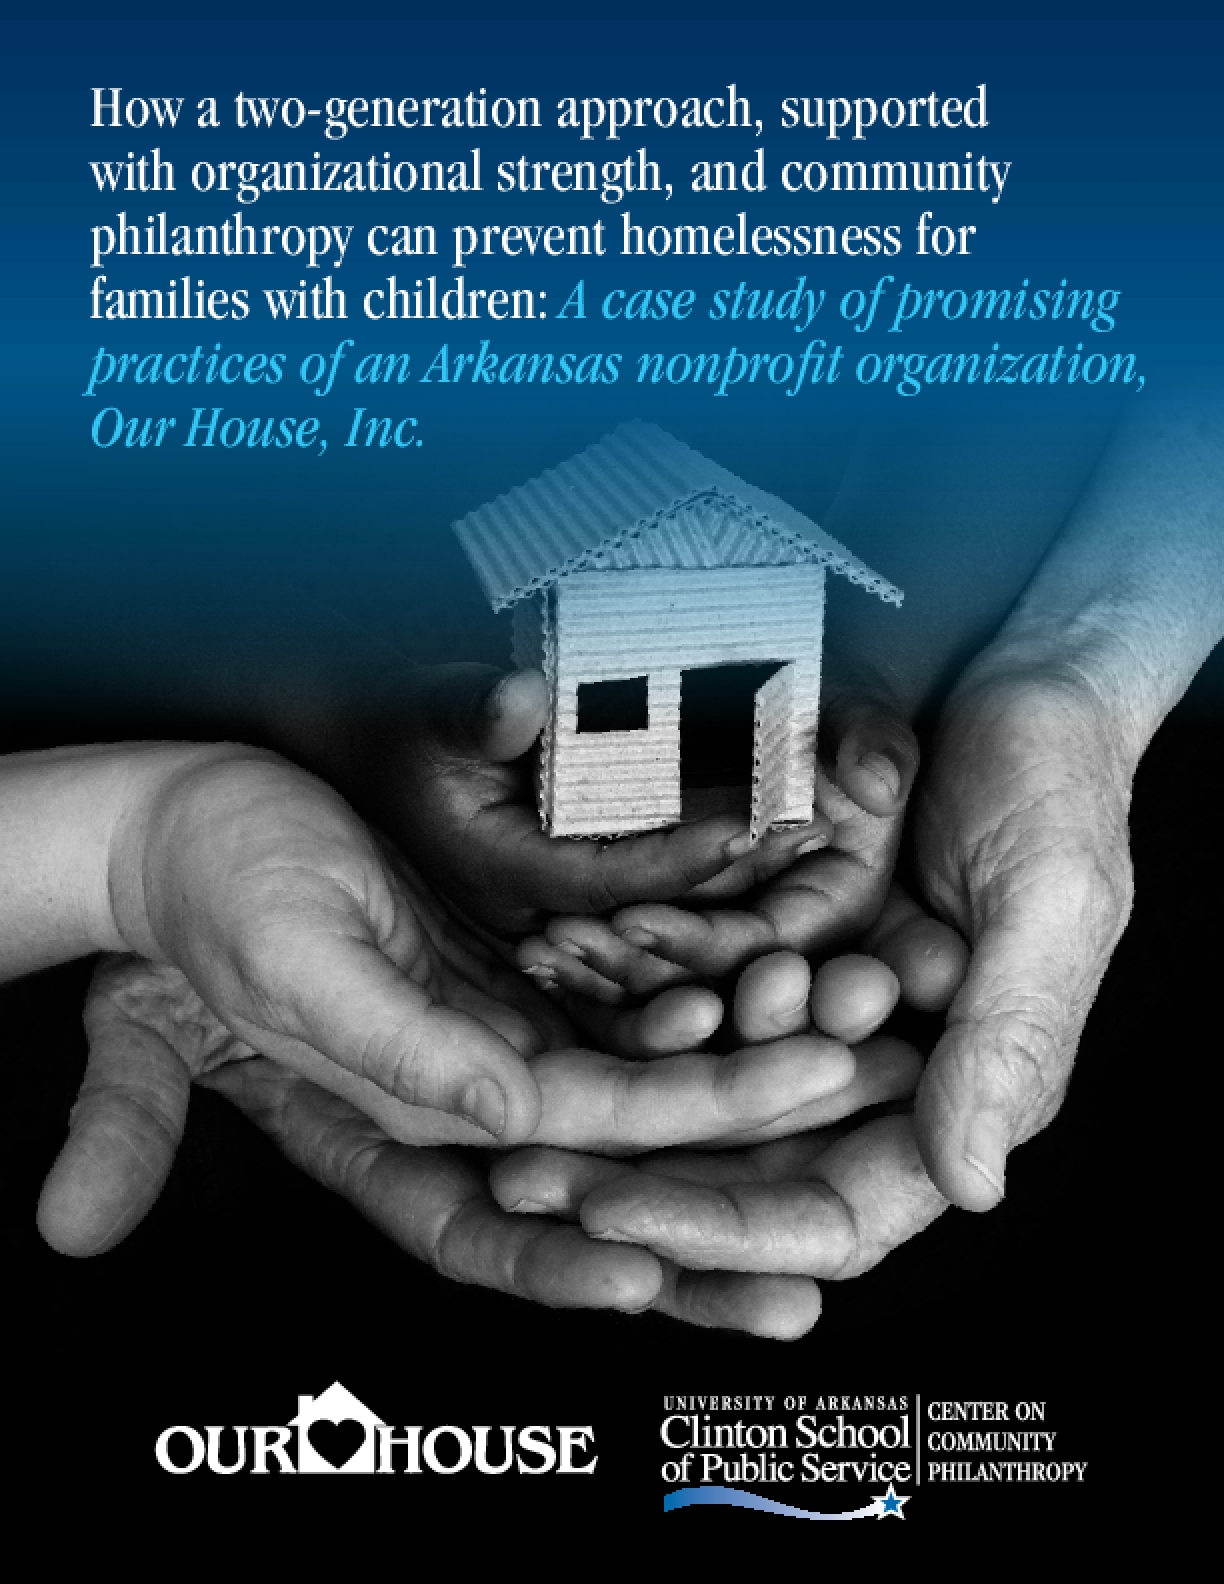 How a Two-Generation Approach, Supported With Organizational Strength, and Community Philanthropy Can Prevent Homelessness for Families With Children